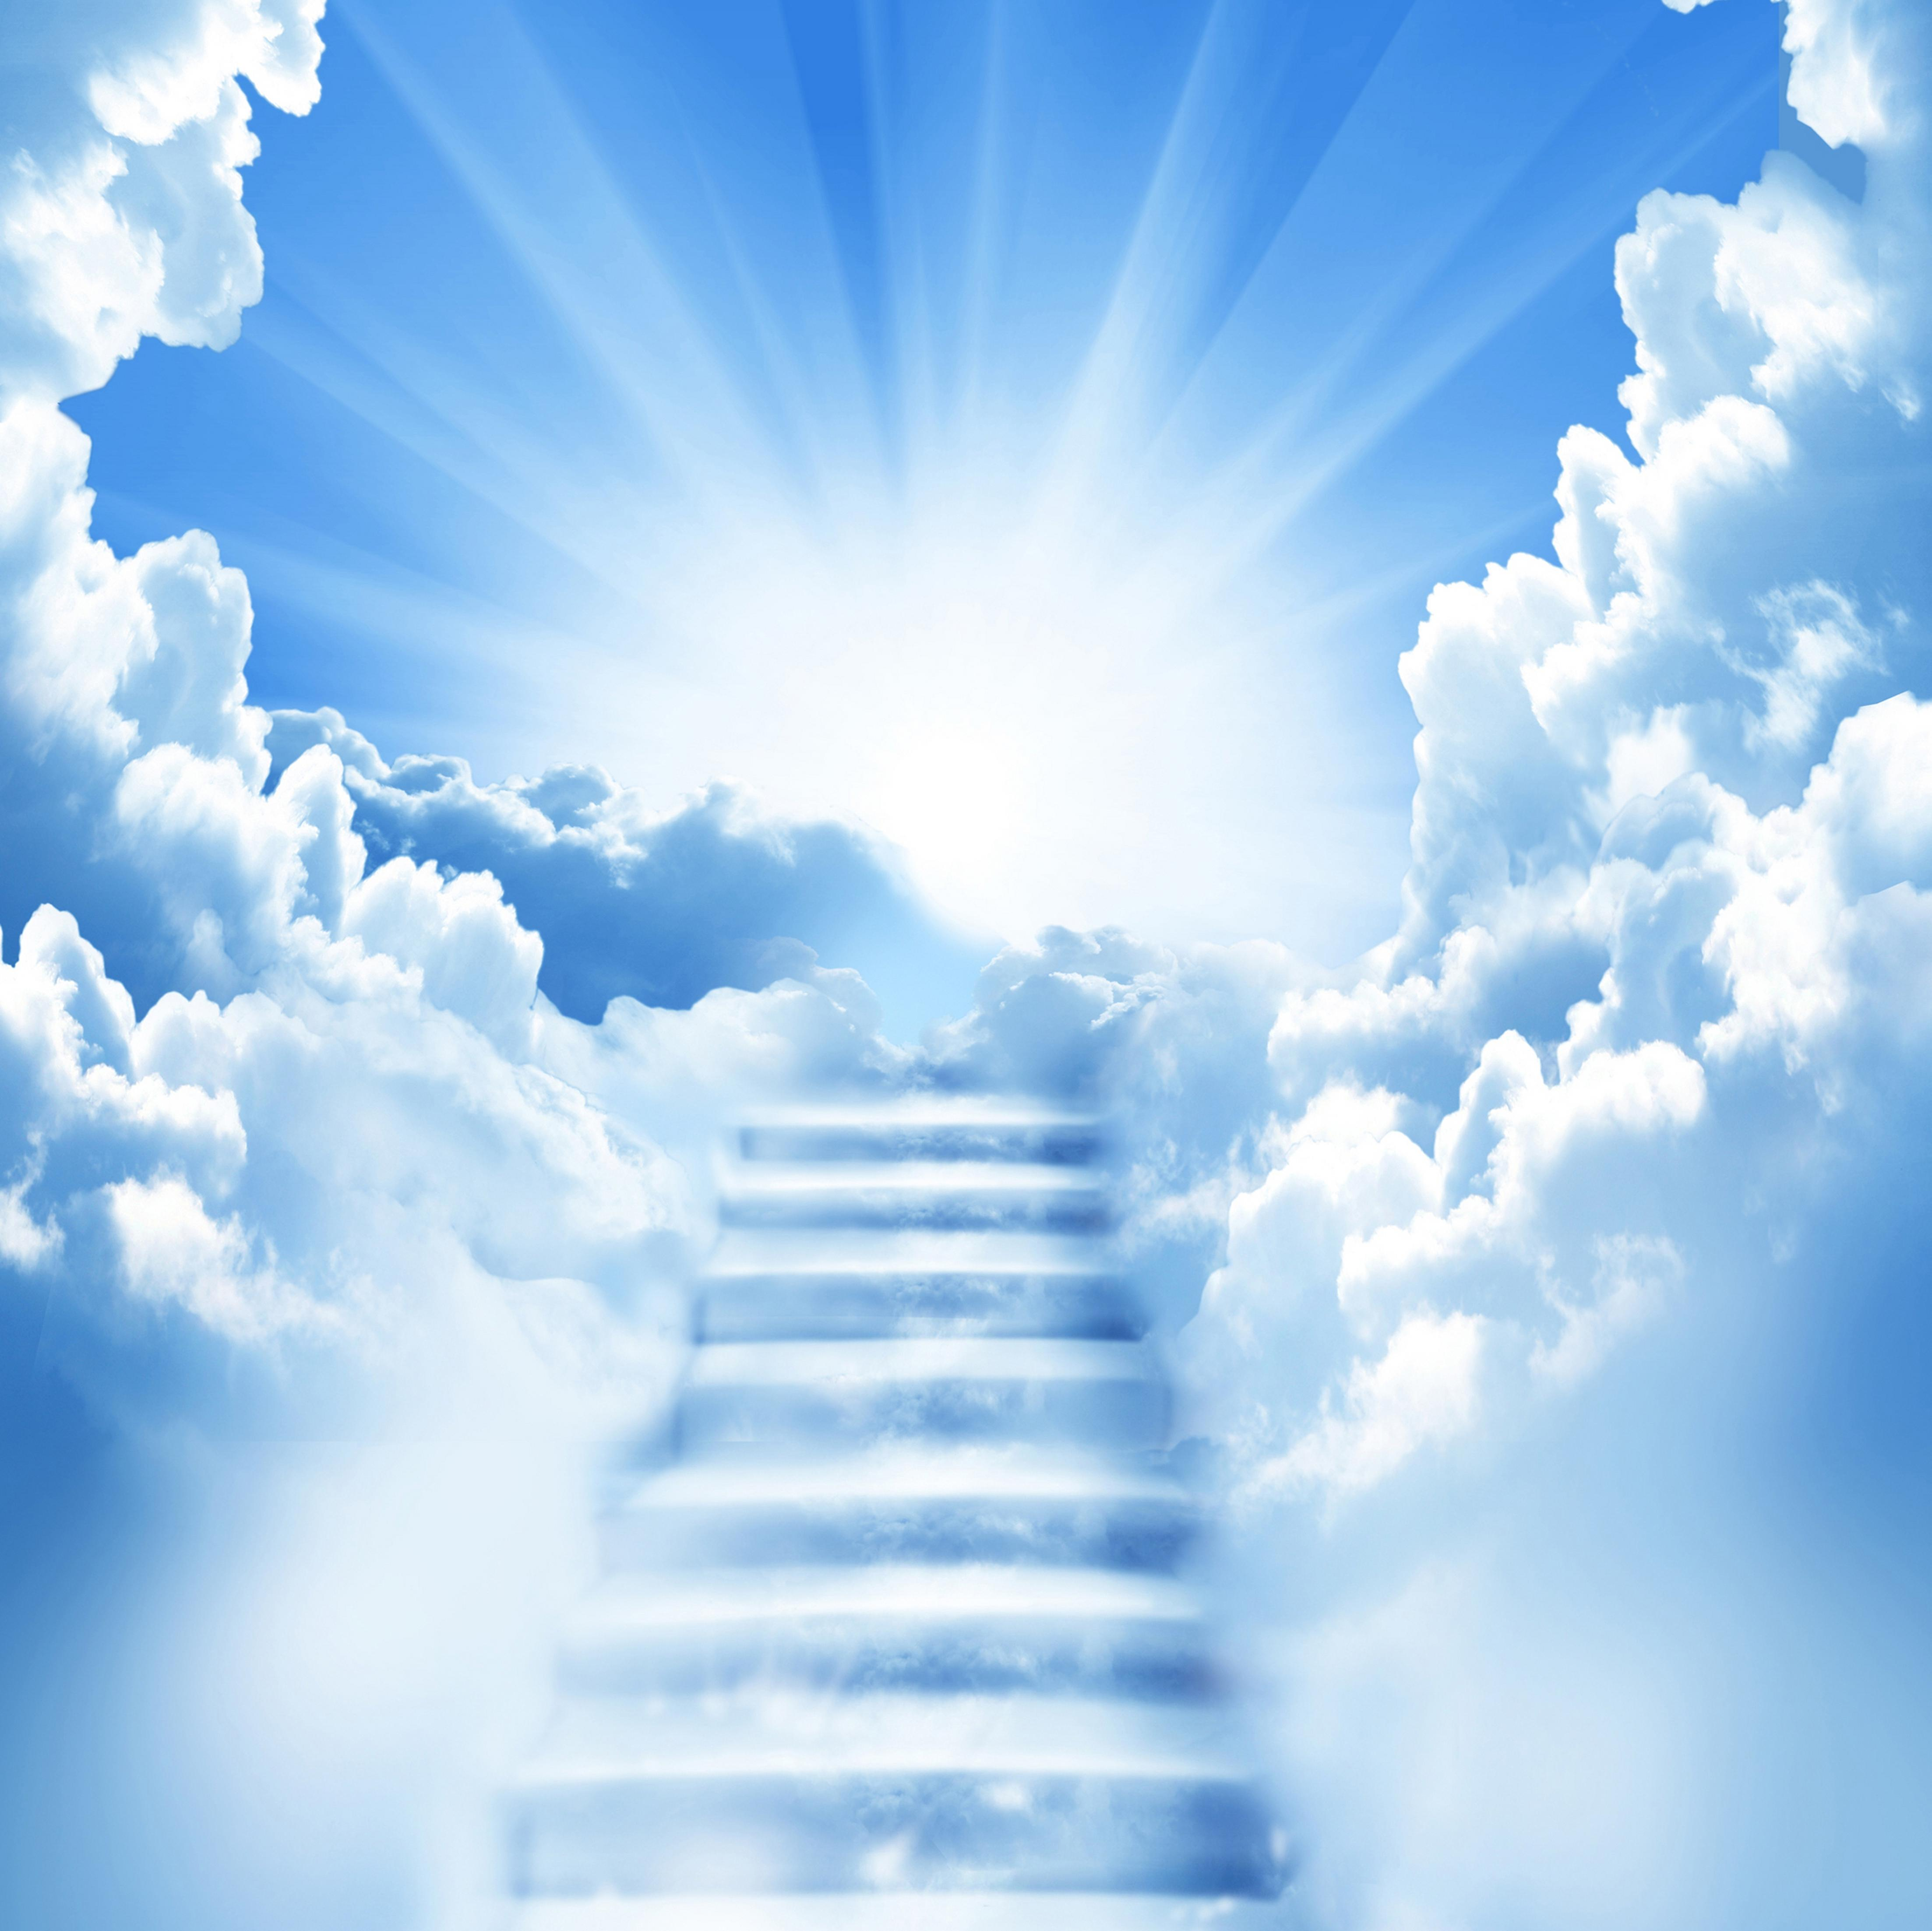 Wallpaper Heaven Stairway To Heaven Wallpapers Group 64 43